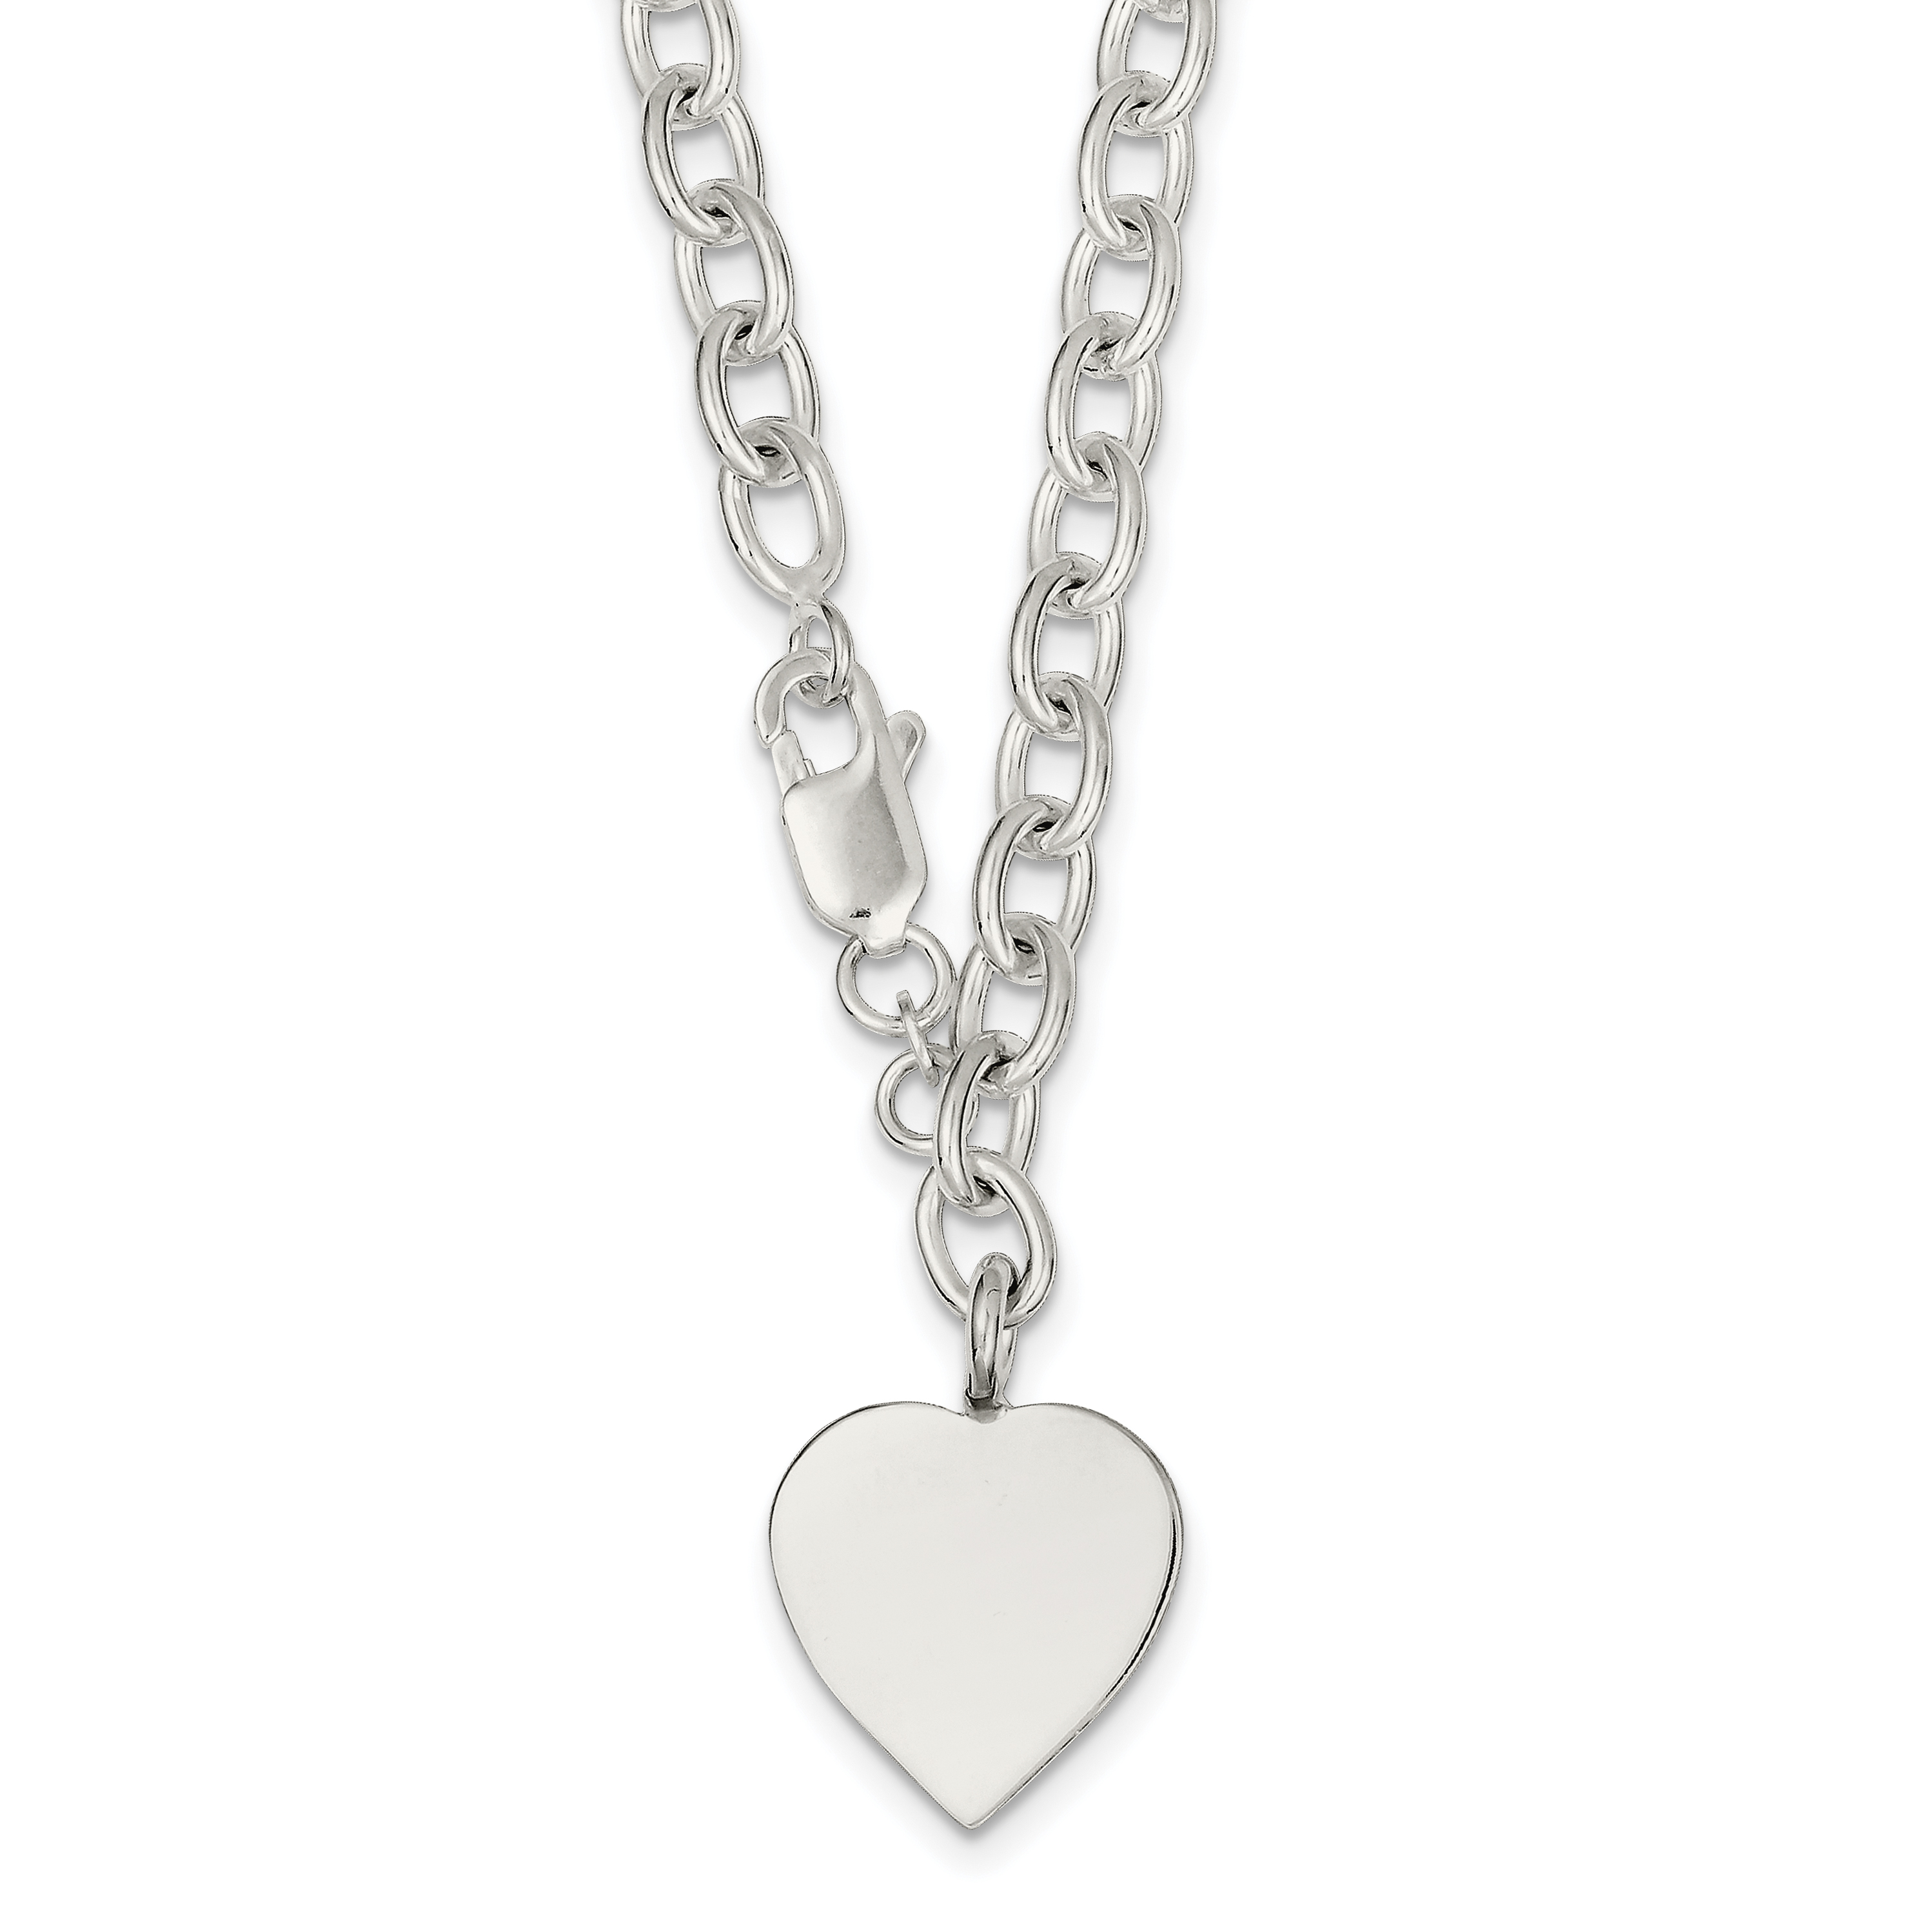 Sterling Silver Heart Charm Necklace | Weight: 27.03 grams, Length: 18mm, Width: 0mm